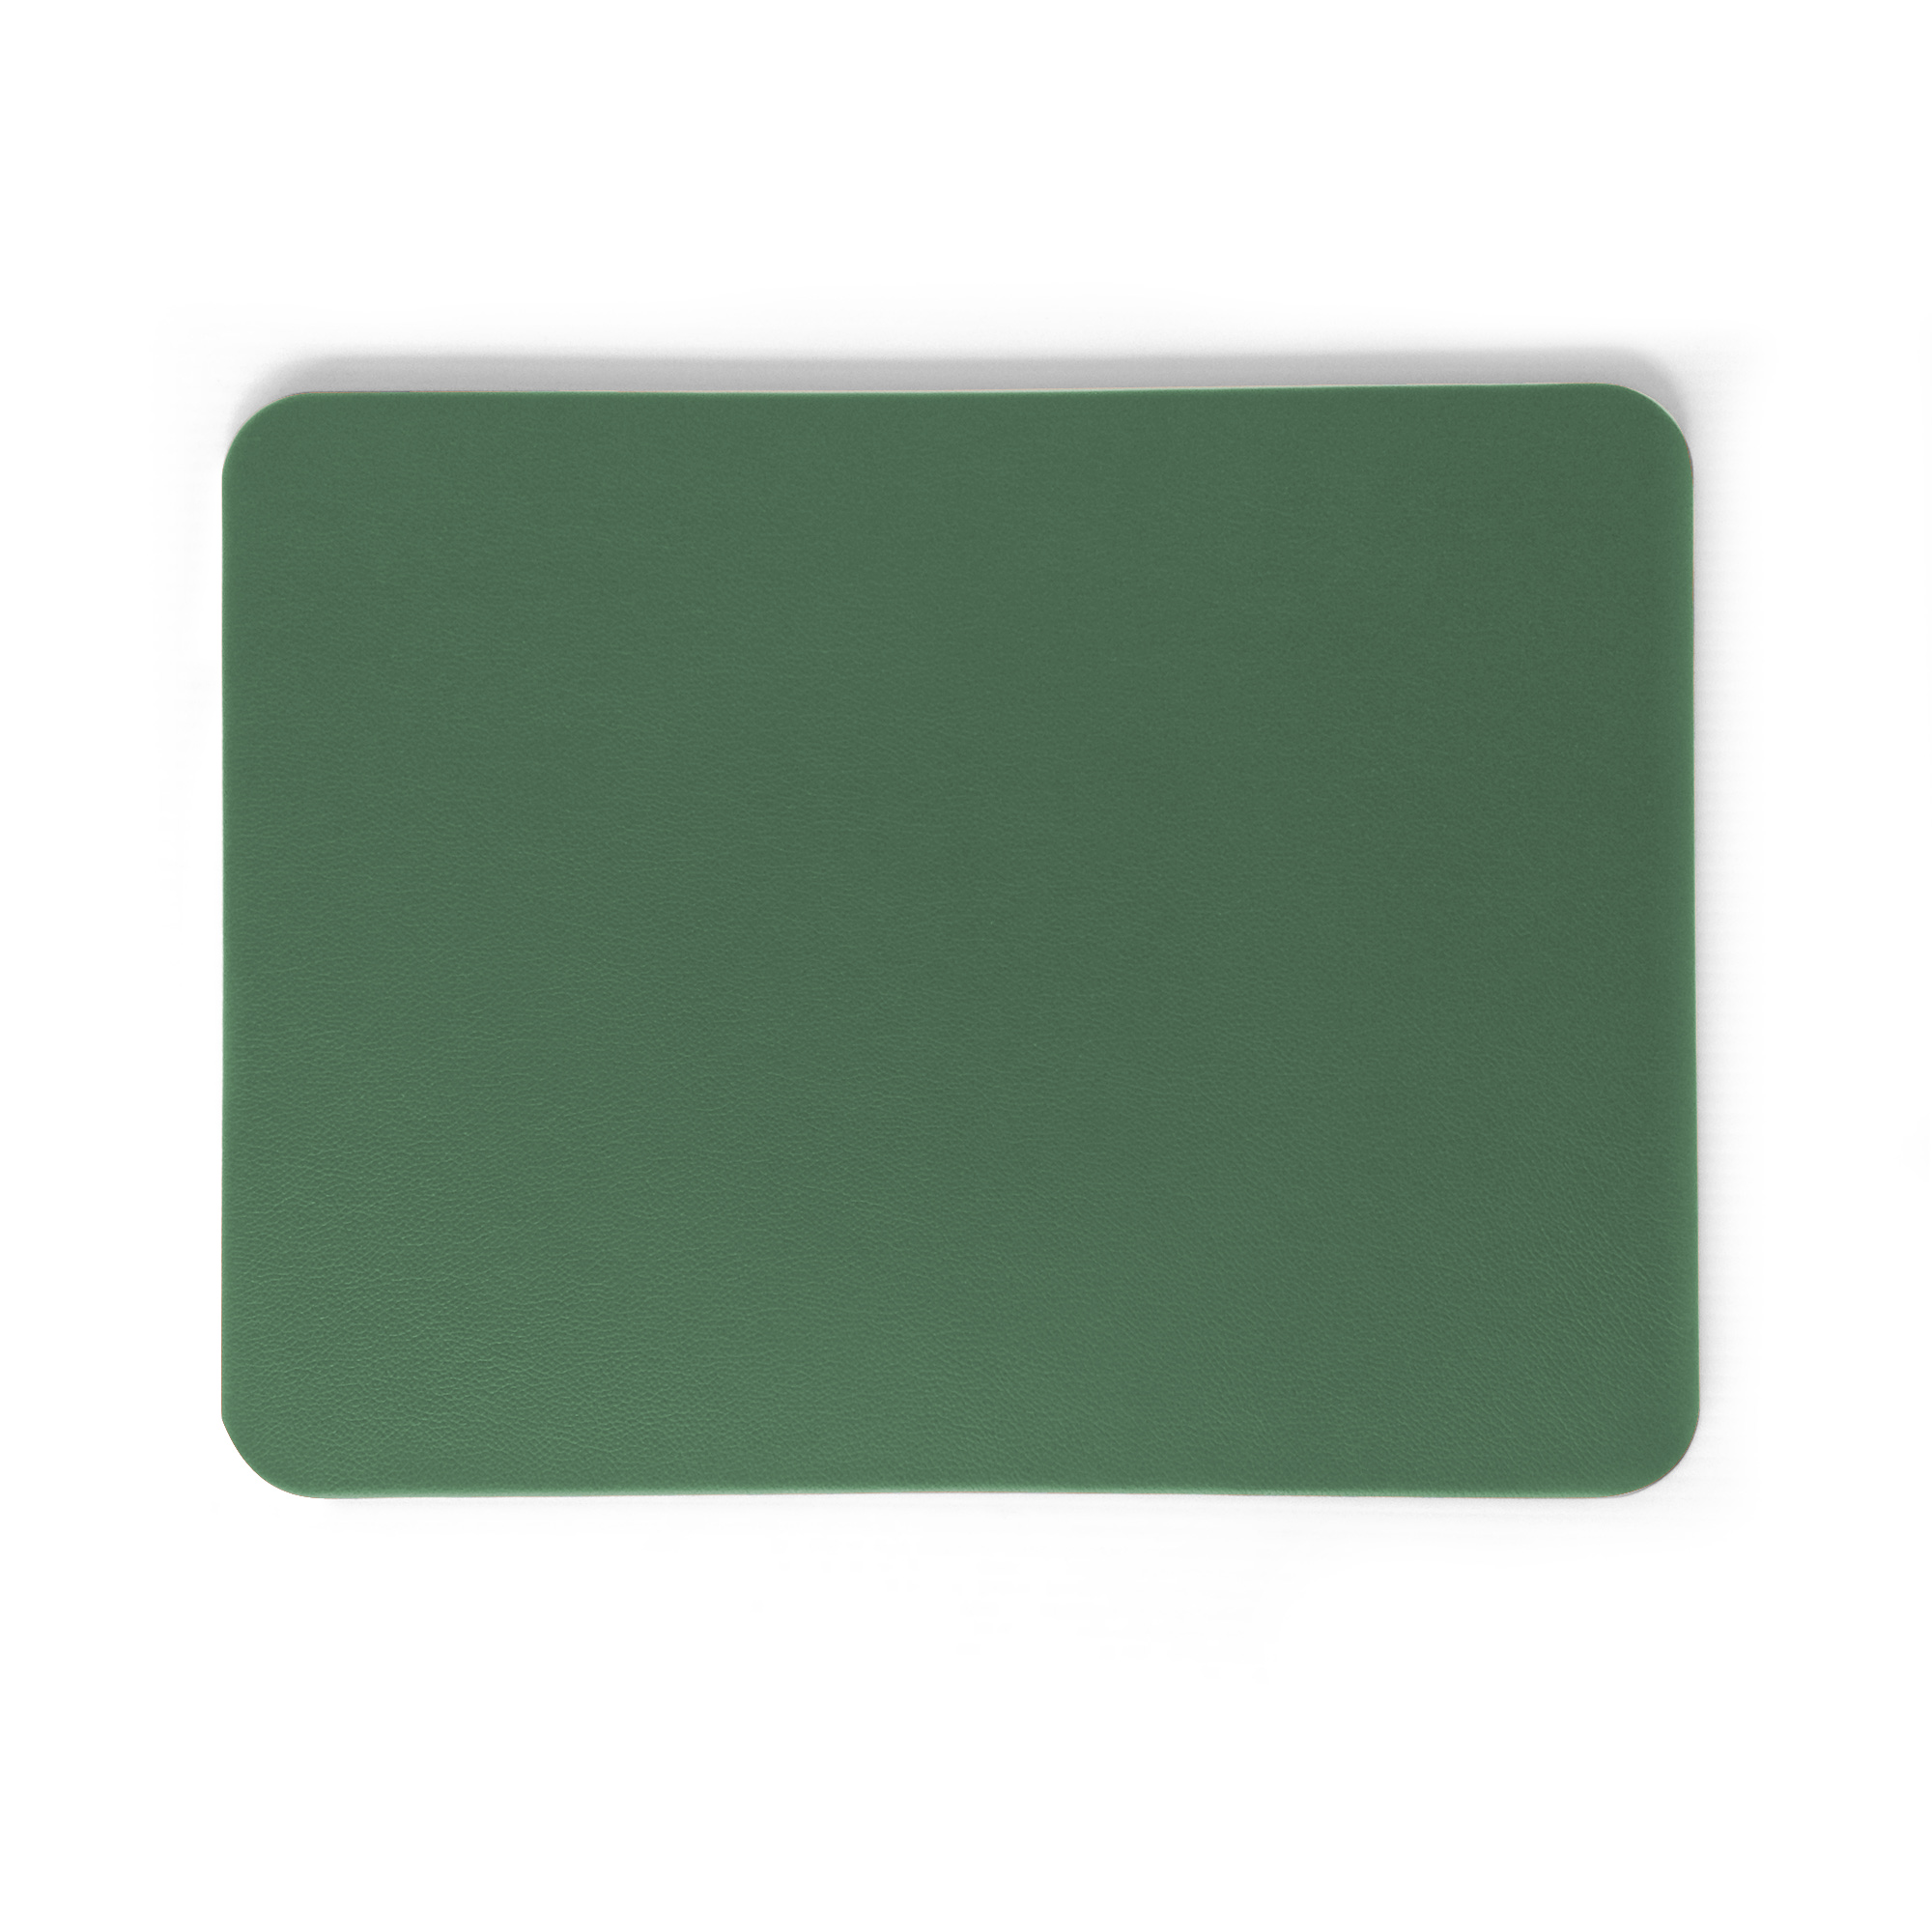 Classic Evergreen Leather Desk Pad